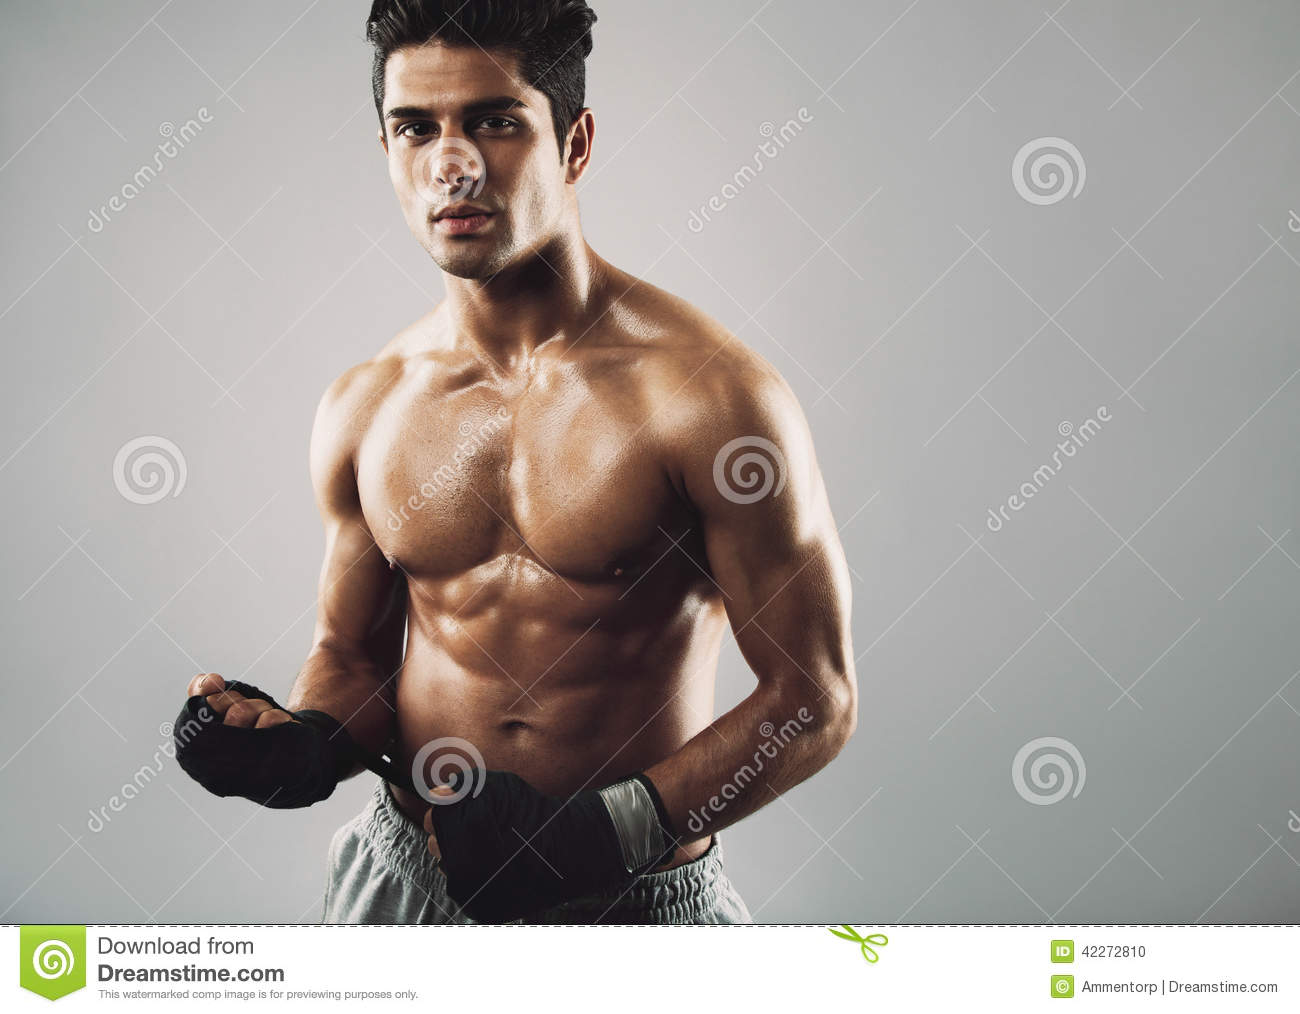 Home Design Game Money Cheats Young Muscular Male Model Muscular Fitness Model On Grey